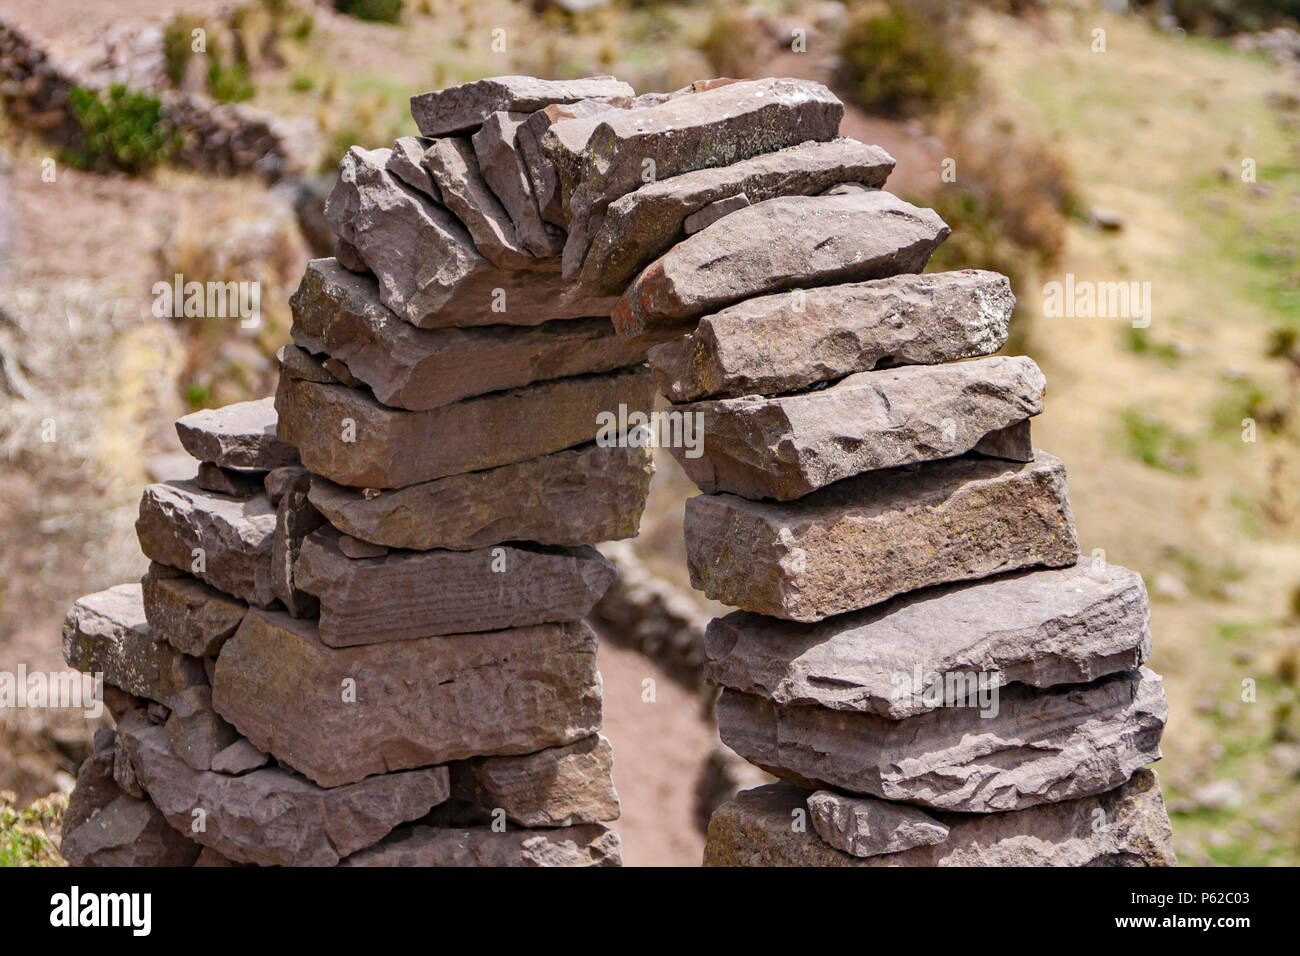 Taquile Island is an island on the Peruvian side of Lake Titicaca 45 km offshore from the city of Puno. - Stock Image